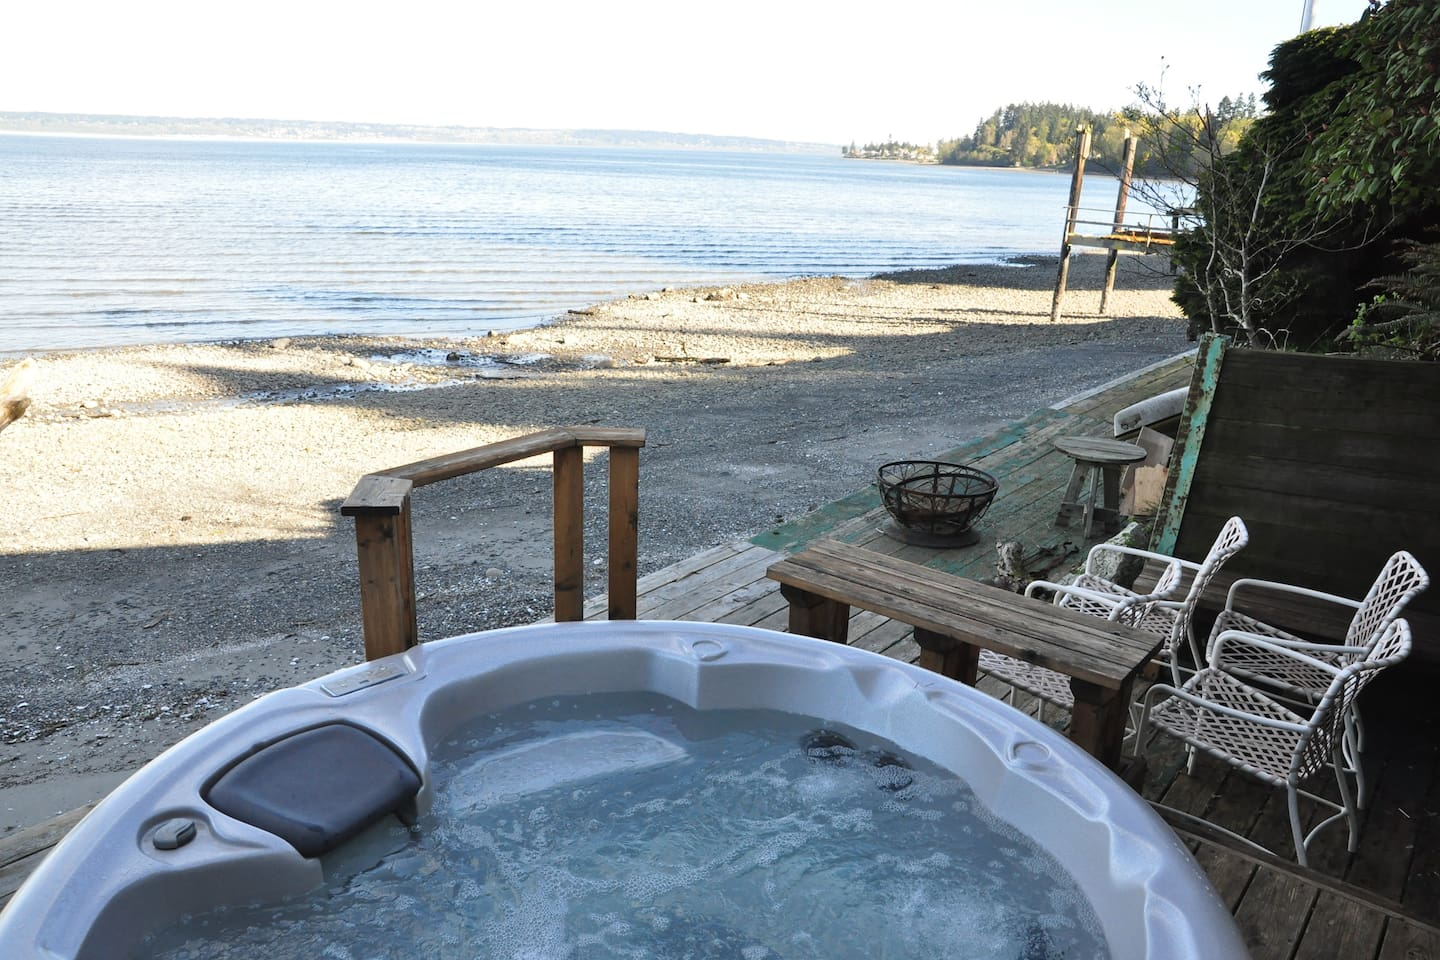 Hot tub by the beach is shared, but AirBnBers get first dibs!